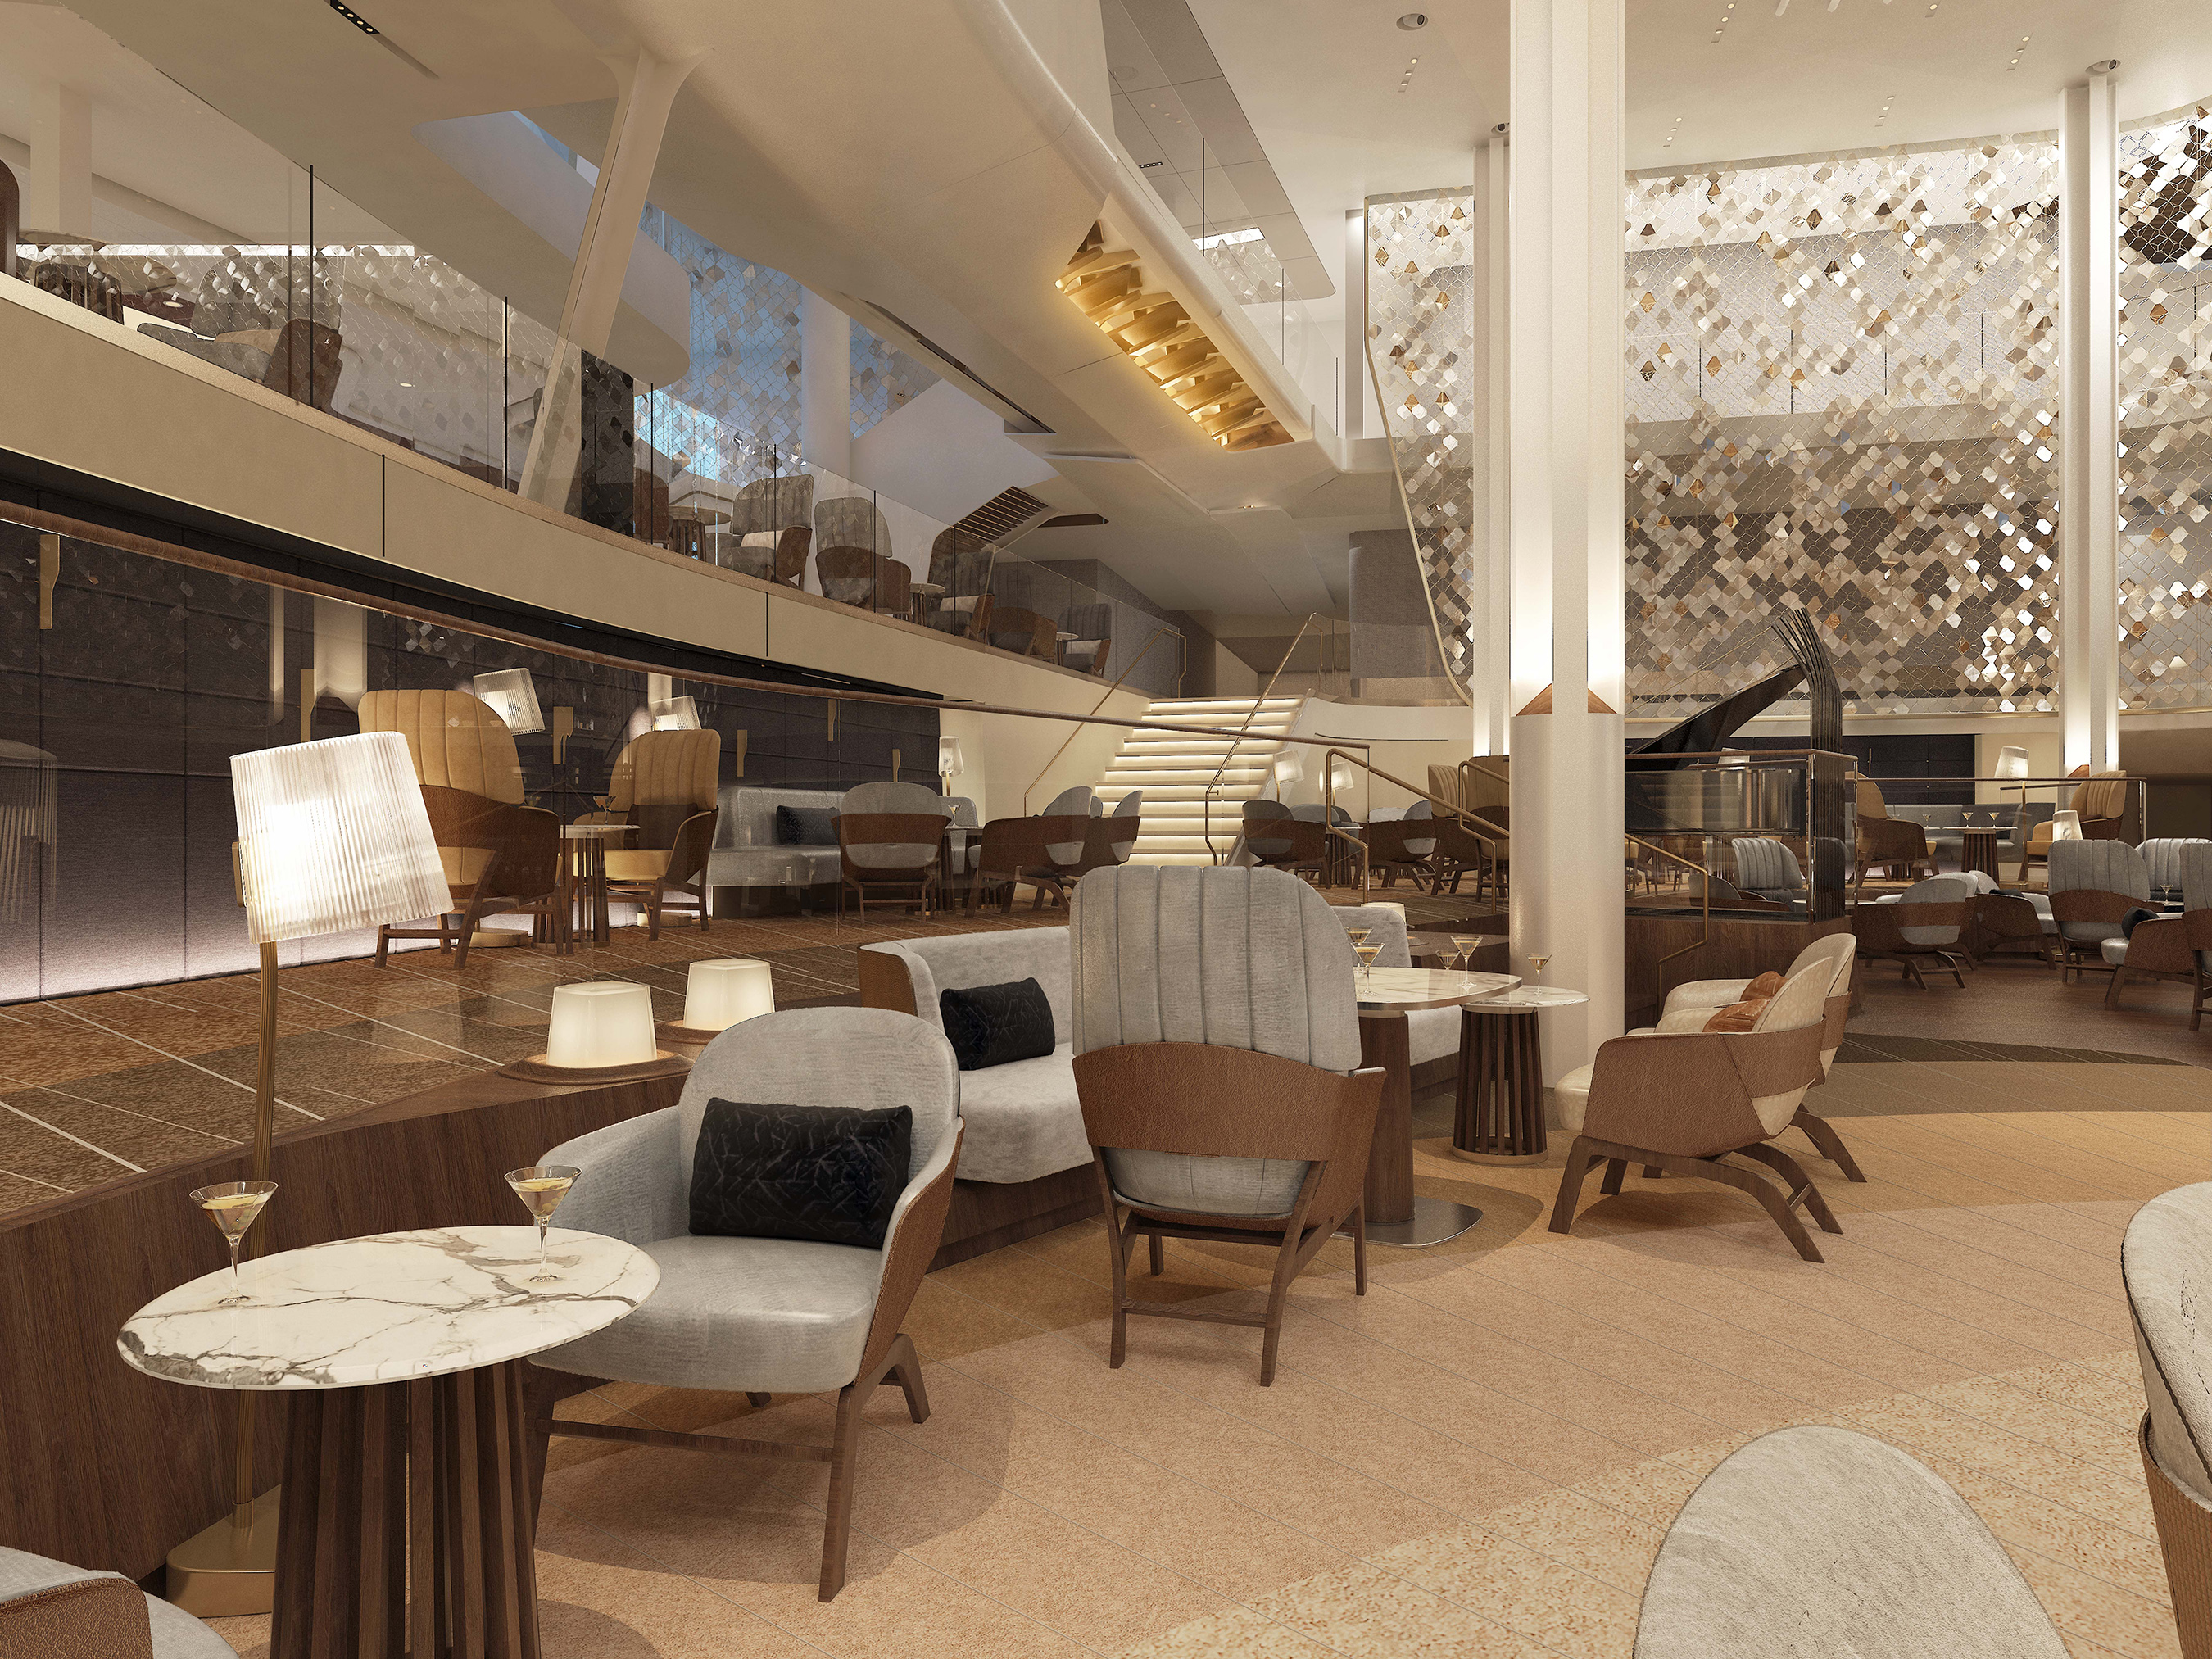 In the morning, The Grand Plaza on Celebrity Edge invites guests to enjoy a cappuccino and a croissant at either of the cafés. Guests can return to The Grand Plaza for afternoon tea or to indulge in a pre-dinner cocktail while enjoying unexpected pop-up performances. At nightfall, the energy transforms completely, and the space becomes the social epicenter of the ship, coming alive with live music.